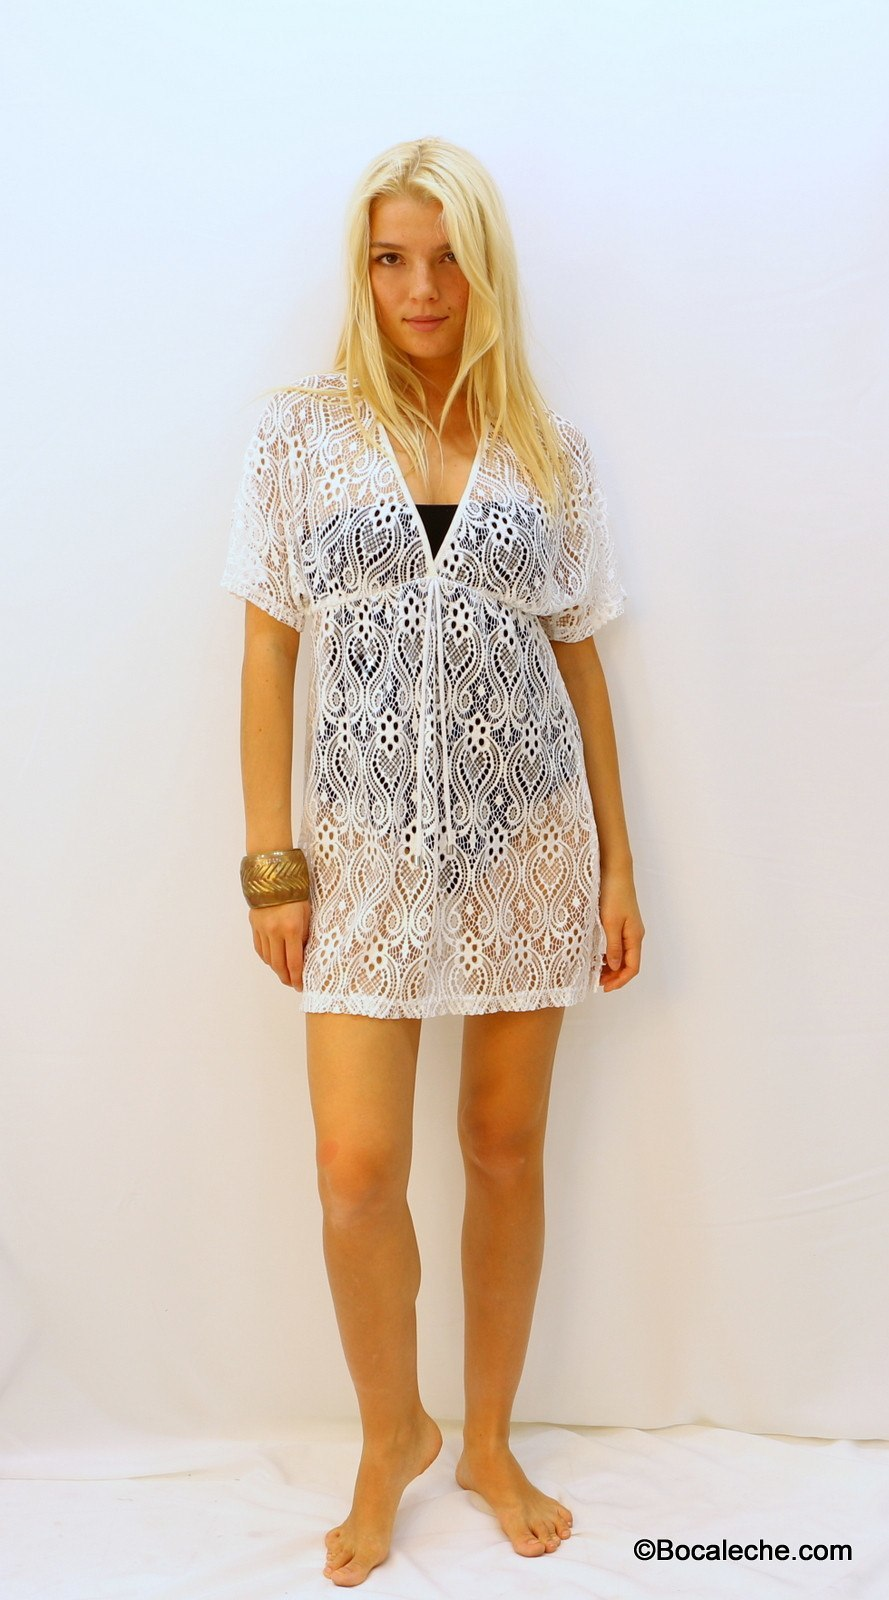 Milky Lace Cover-up - BOCALECHE - 1